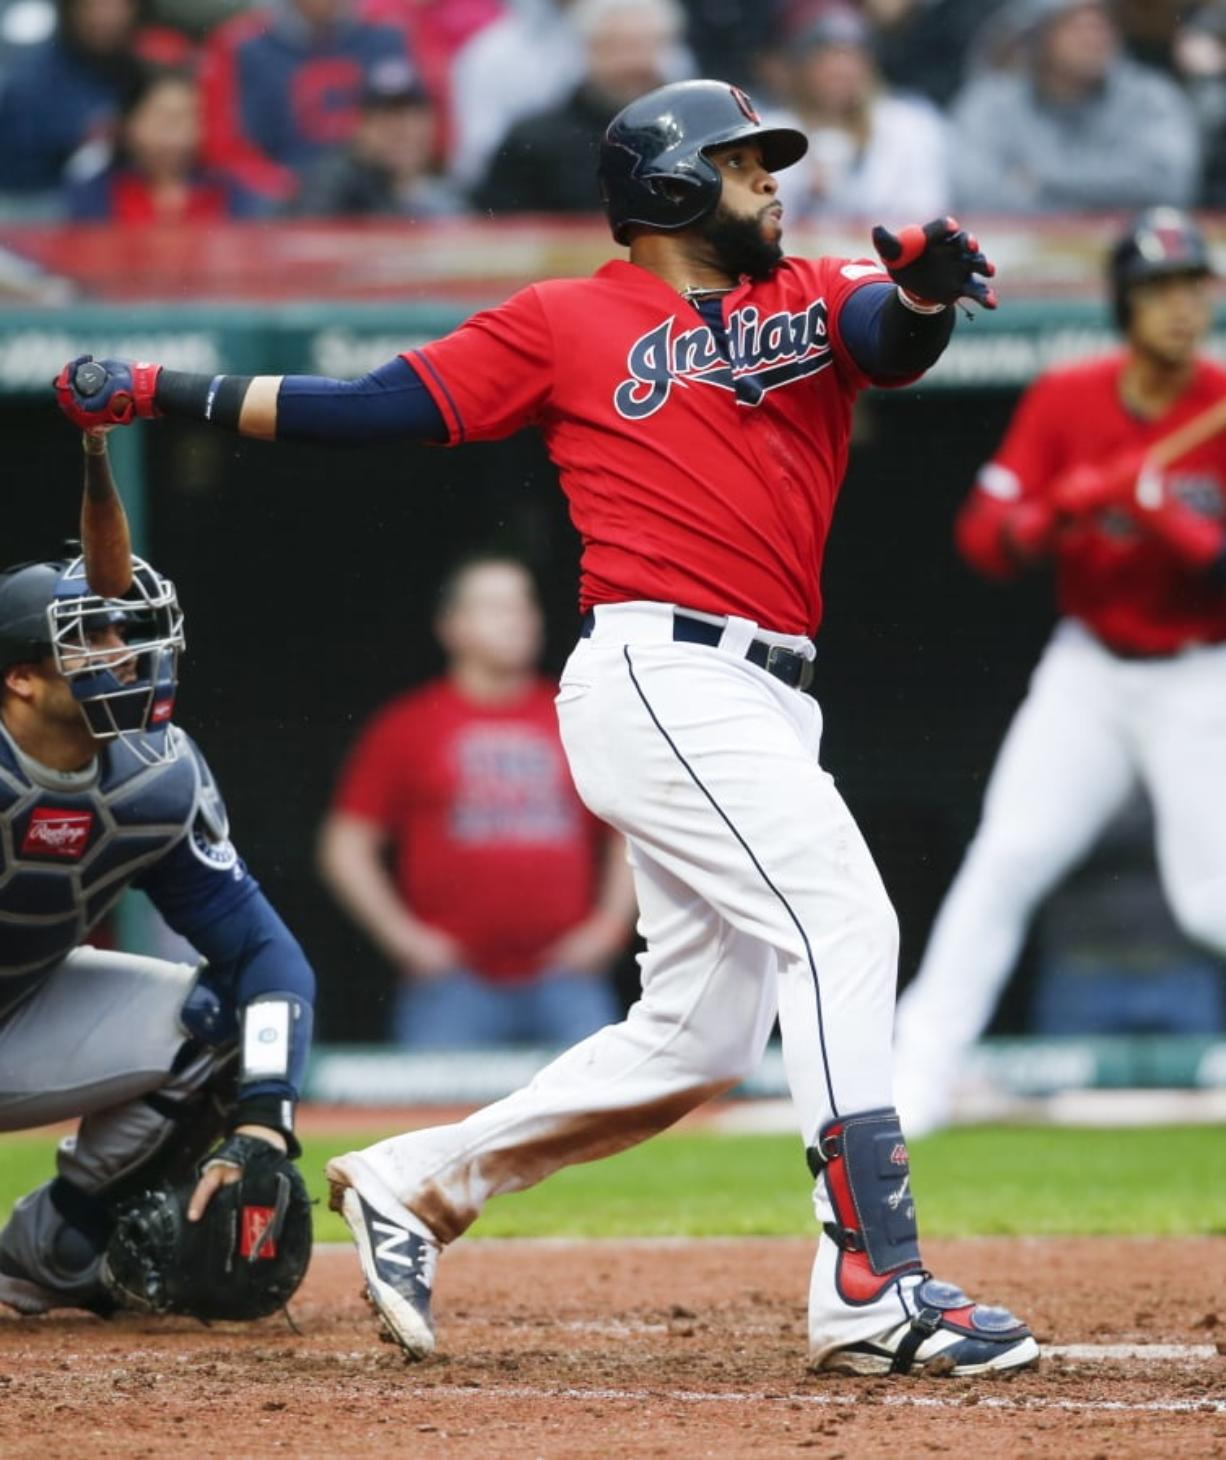 Cleveland Indians' Carlos Santana hits a two-run home run off Seattle Mariners relief pitcher Connor Sadzeck during the eighth inning of a baseball game, Saturday, May 4, 2019, in Cleveland. The Indians defeated the Mariners 5-4.